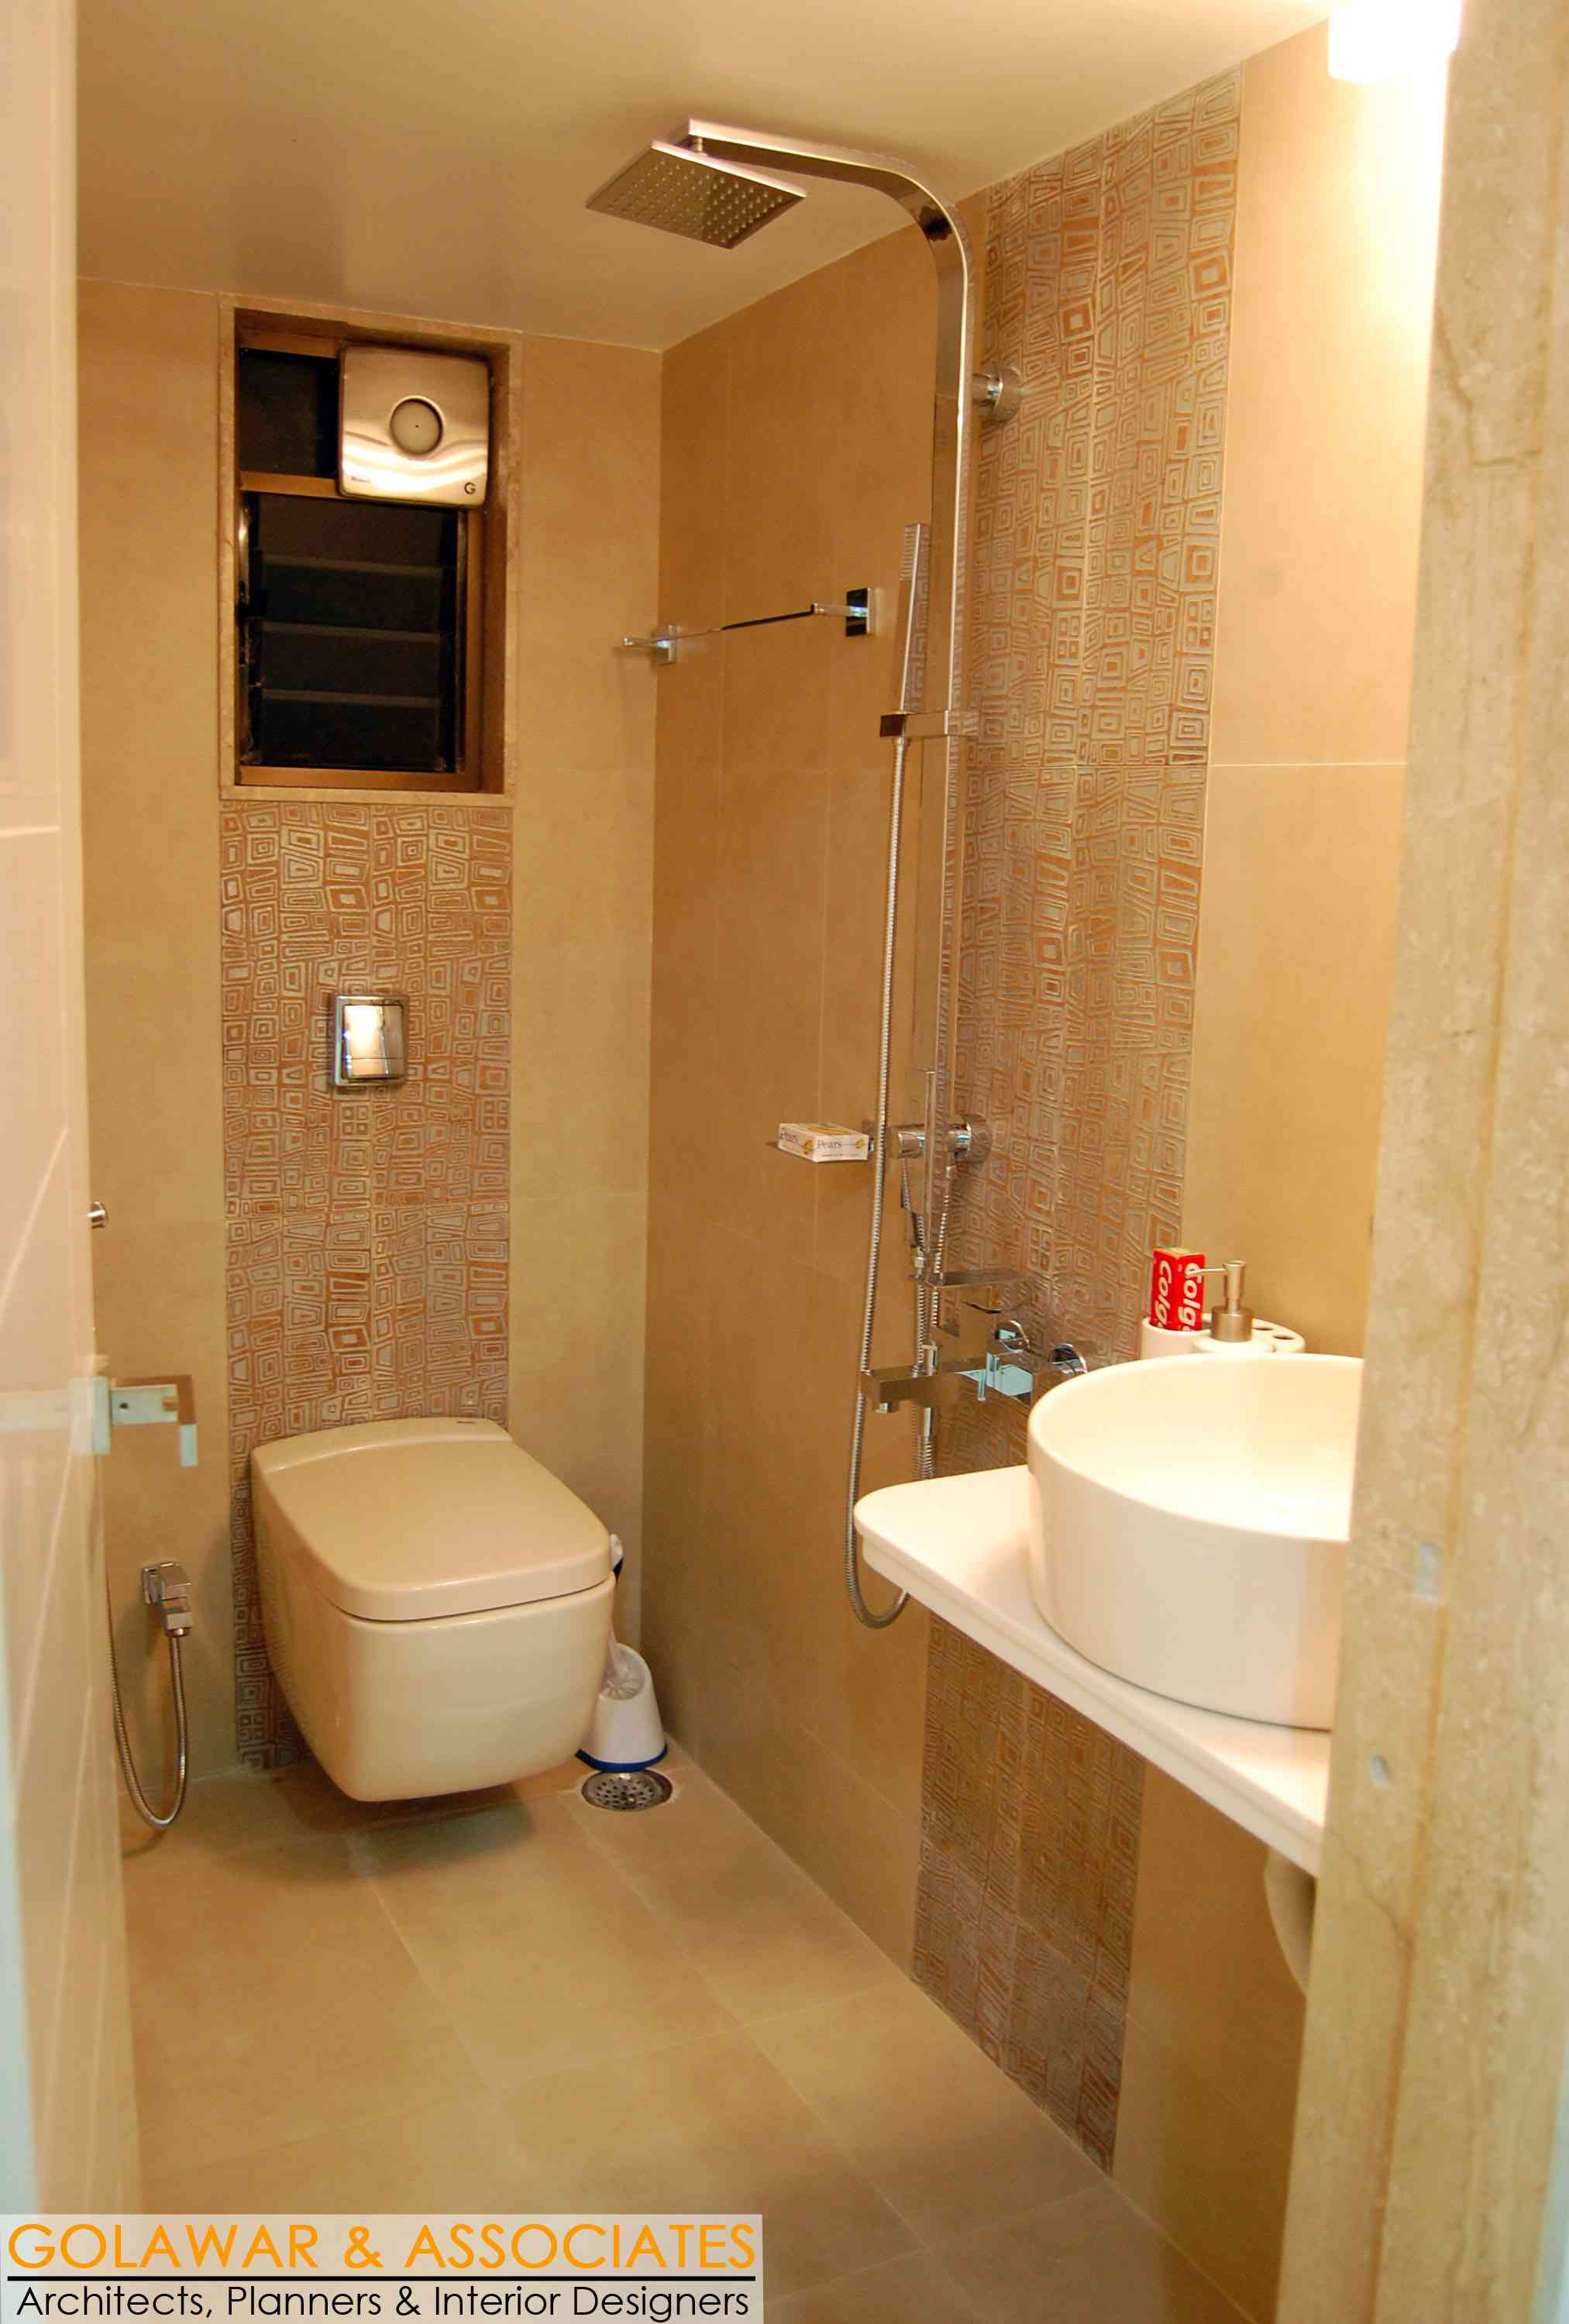 Small bathroom designs india photos design ideas for Bathroom ideas india